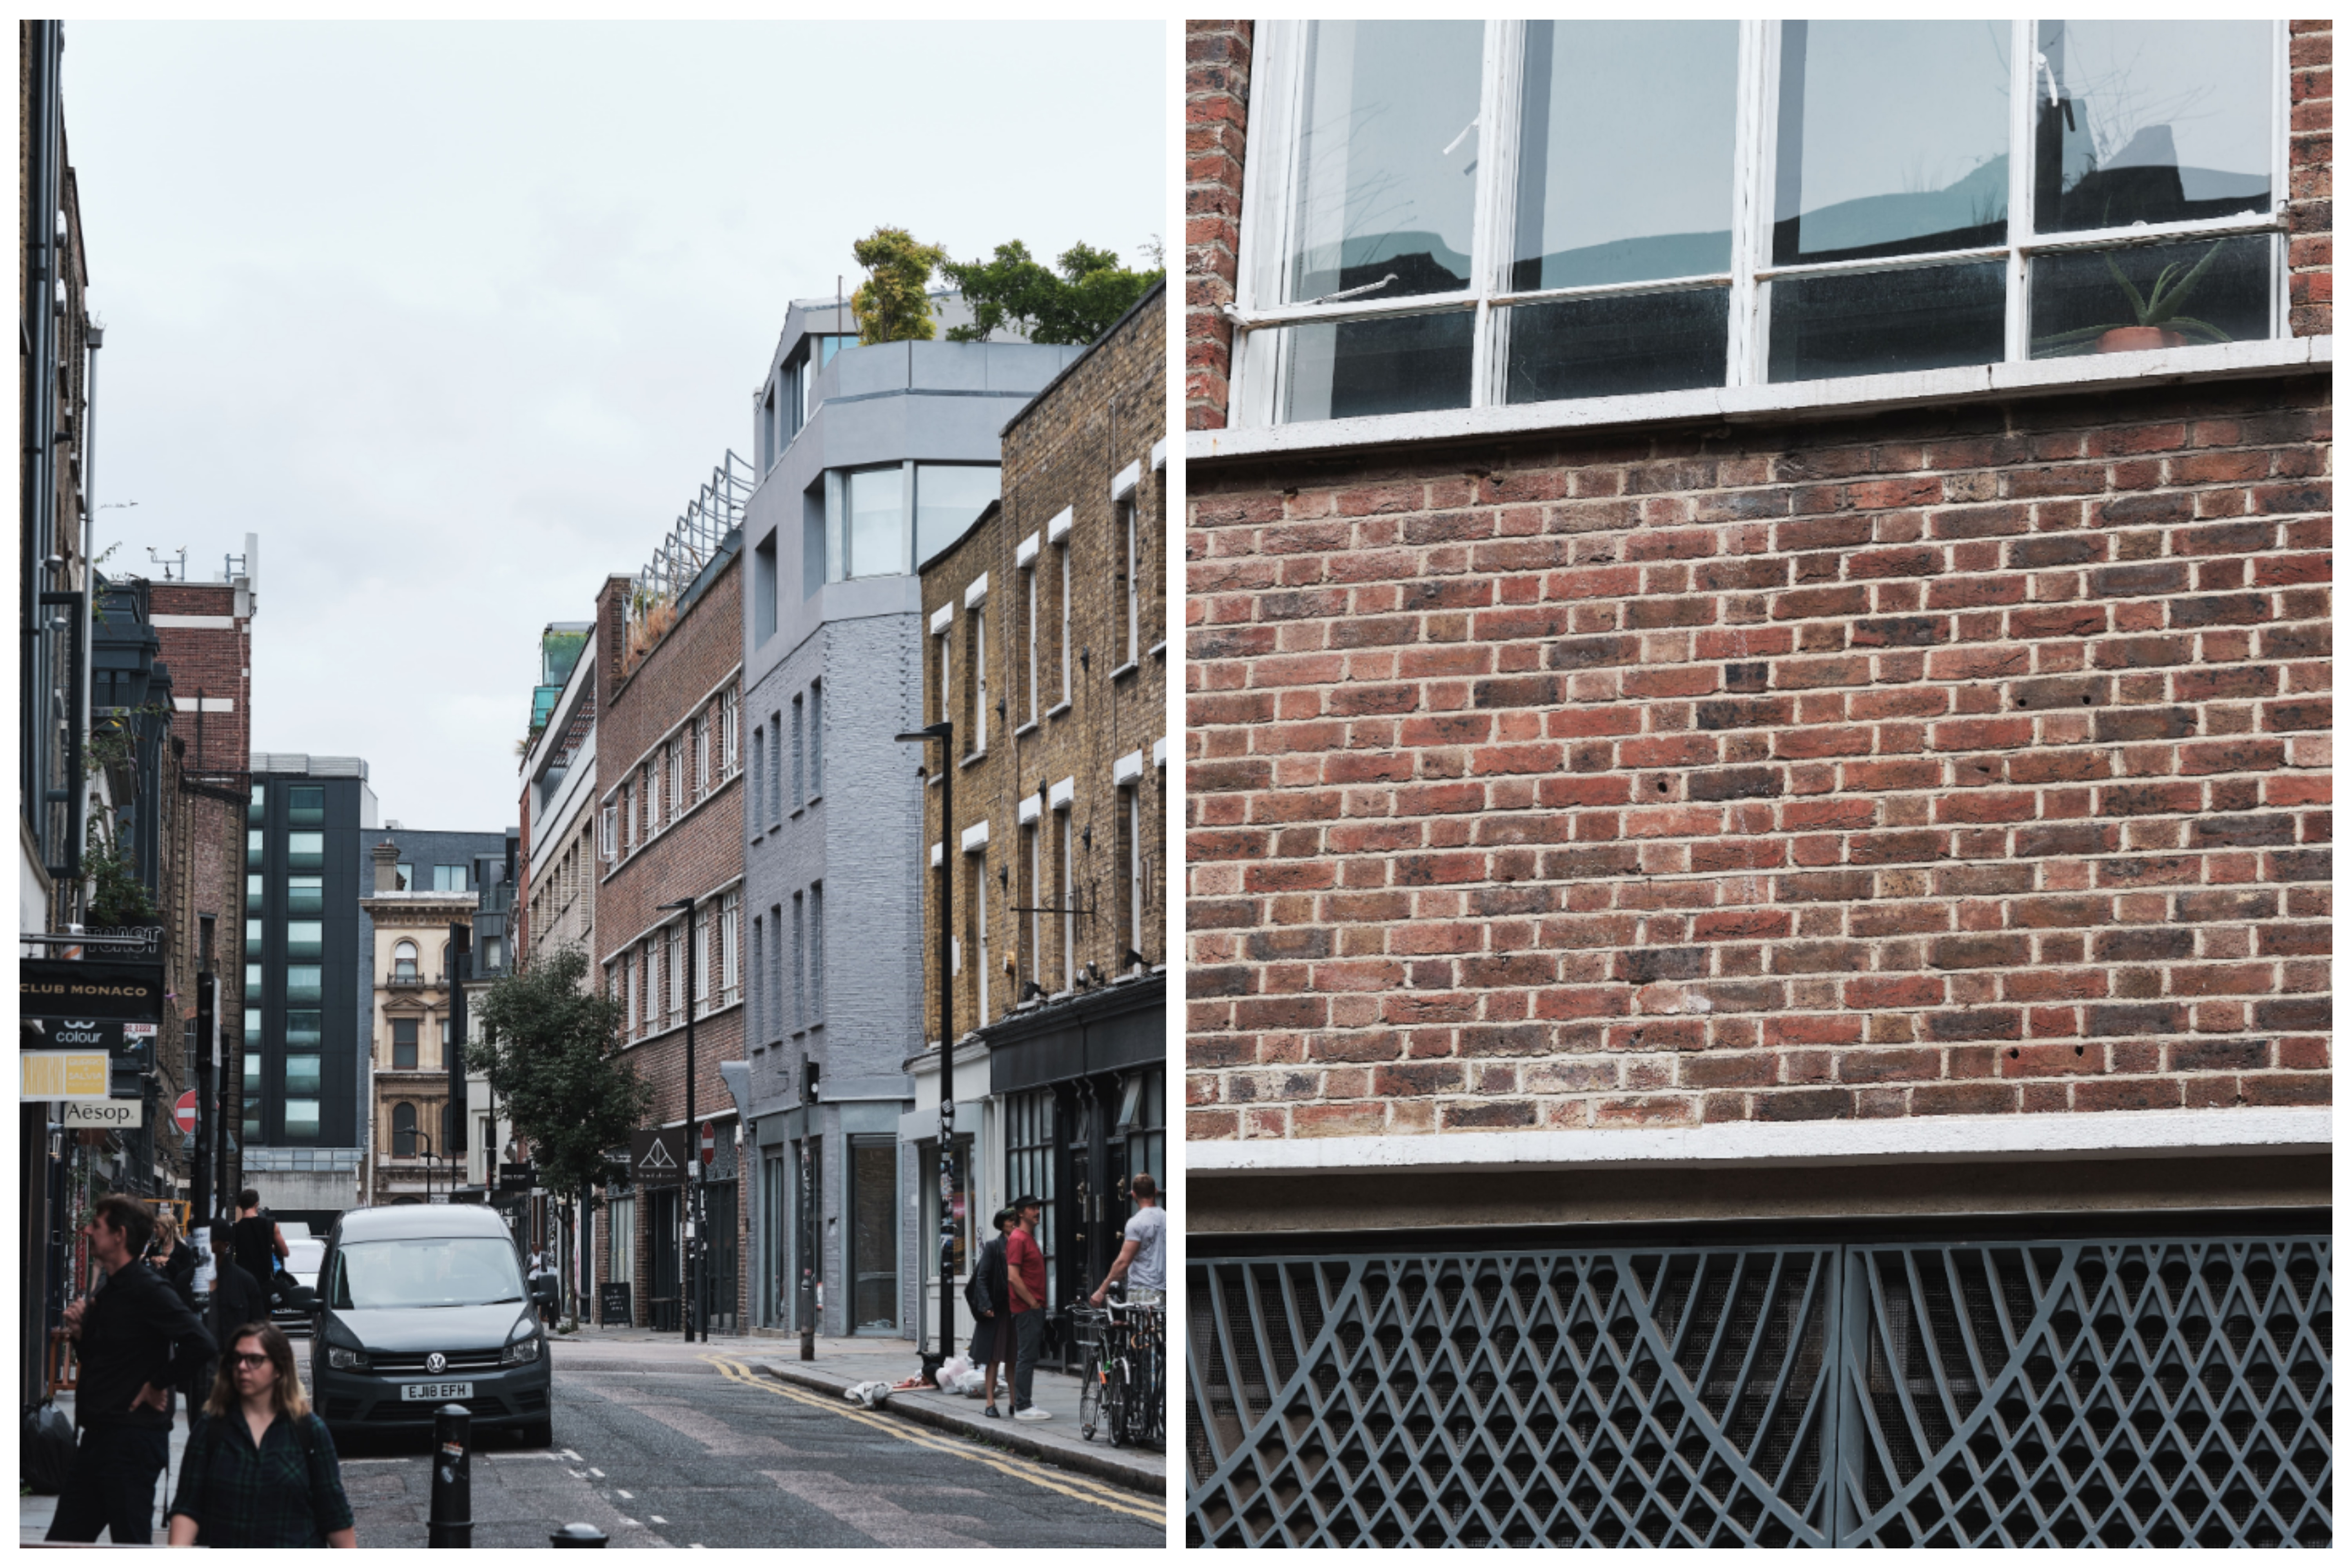 Aucoot - Chance Street and Redchurch Street - vPPR Architects